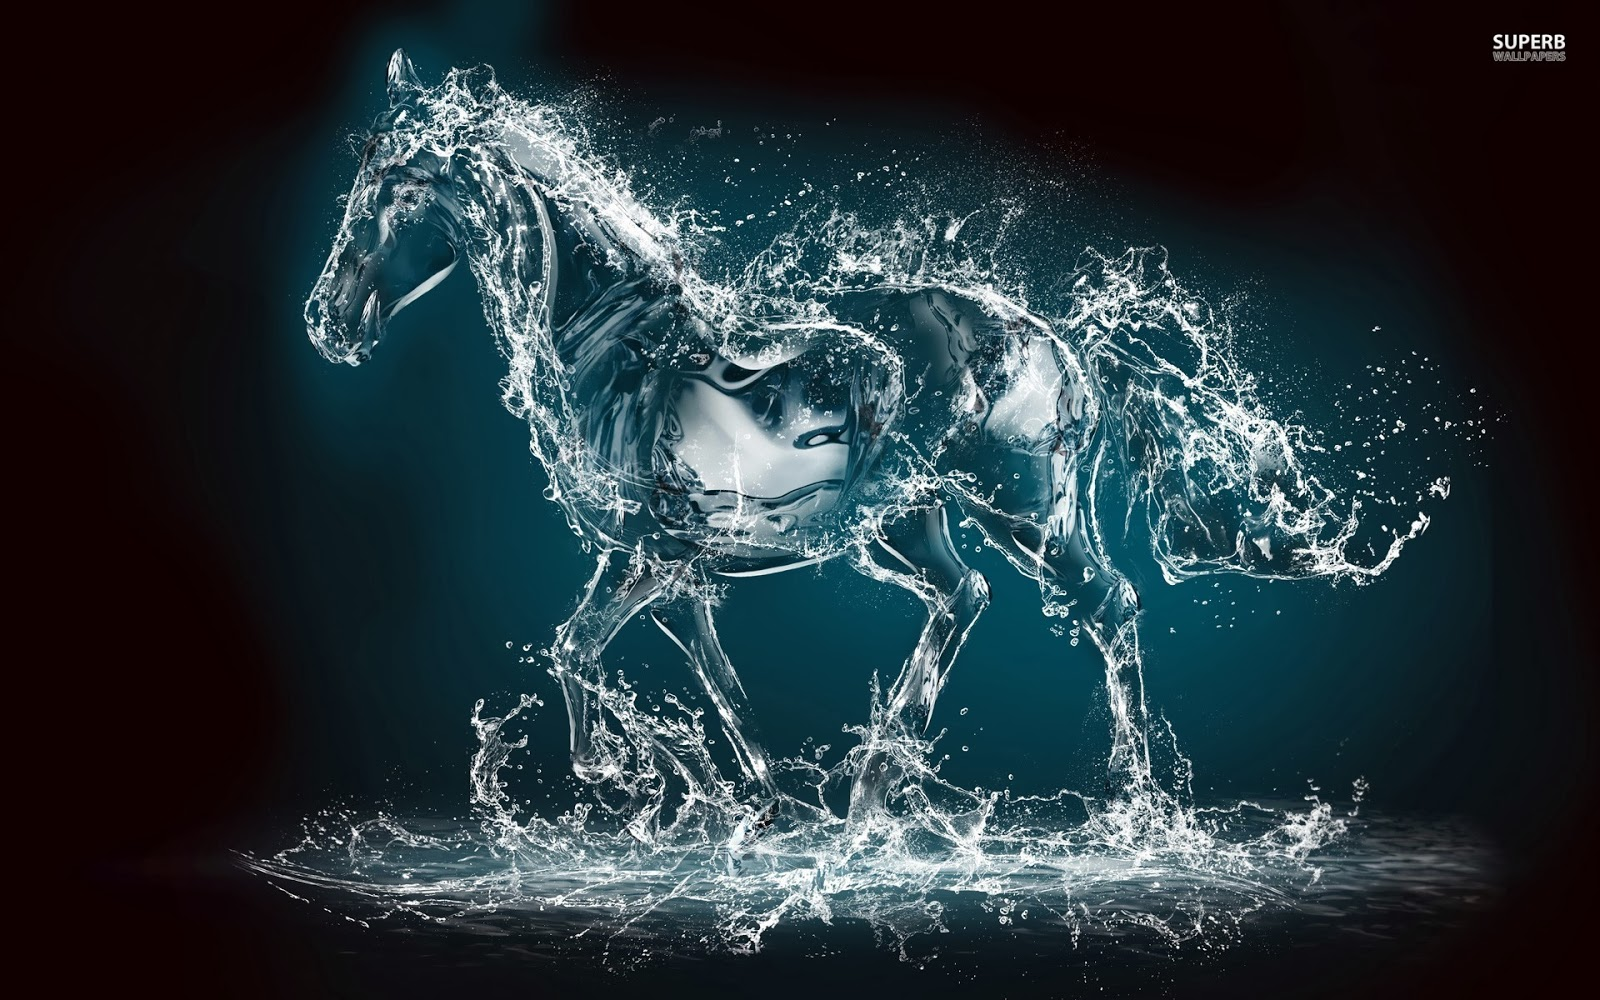 Water horse wallpaper - photo#1